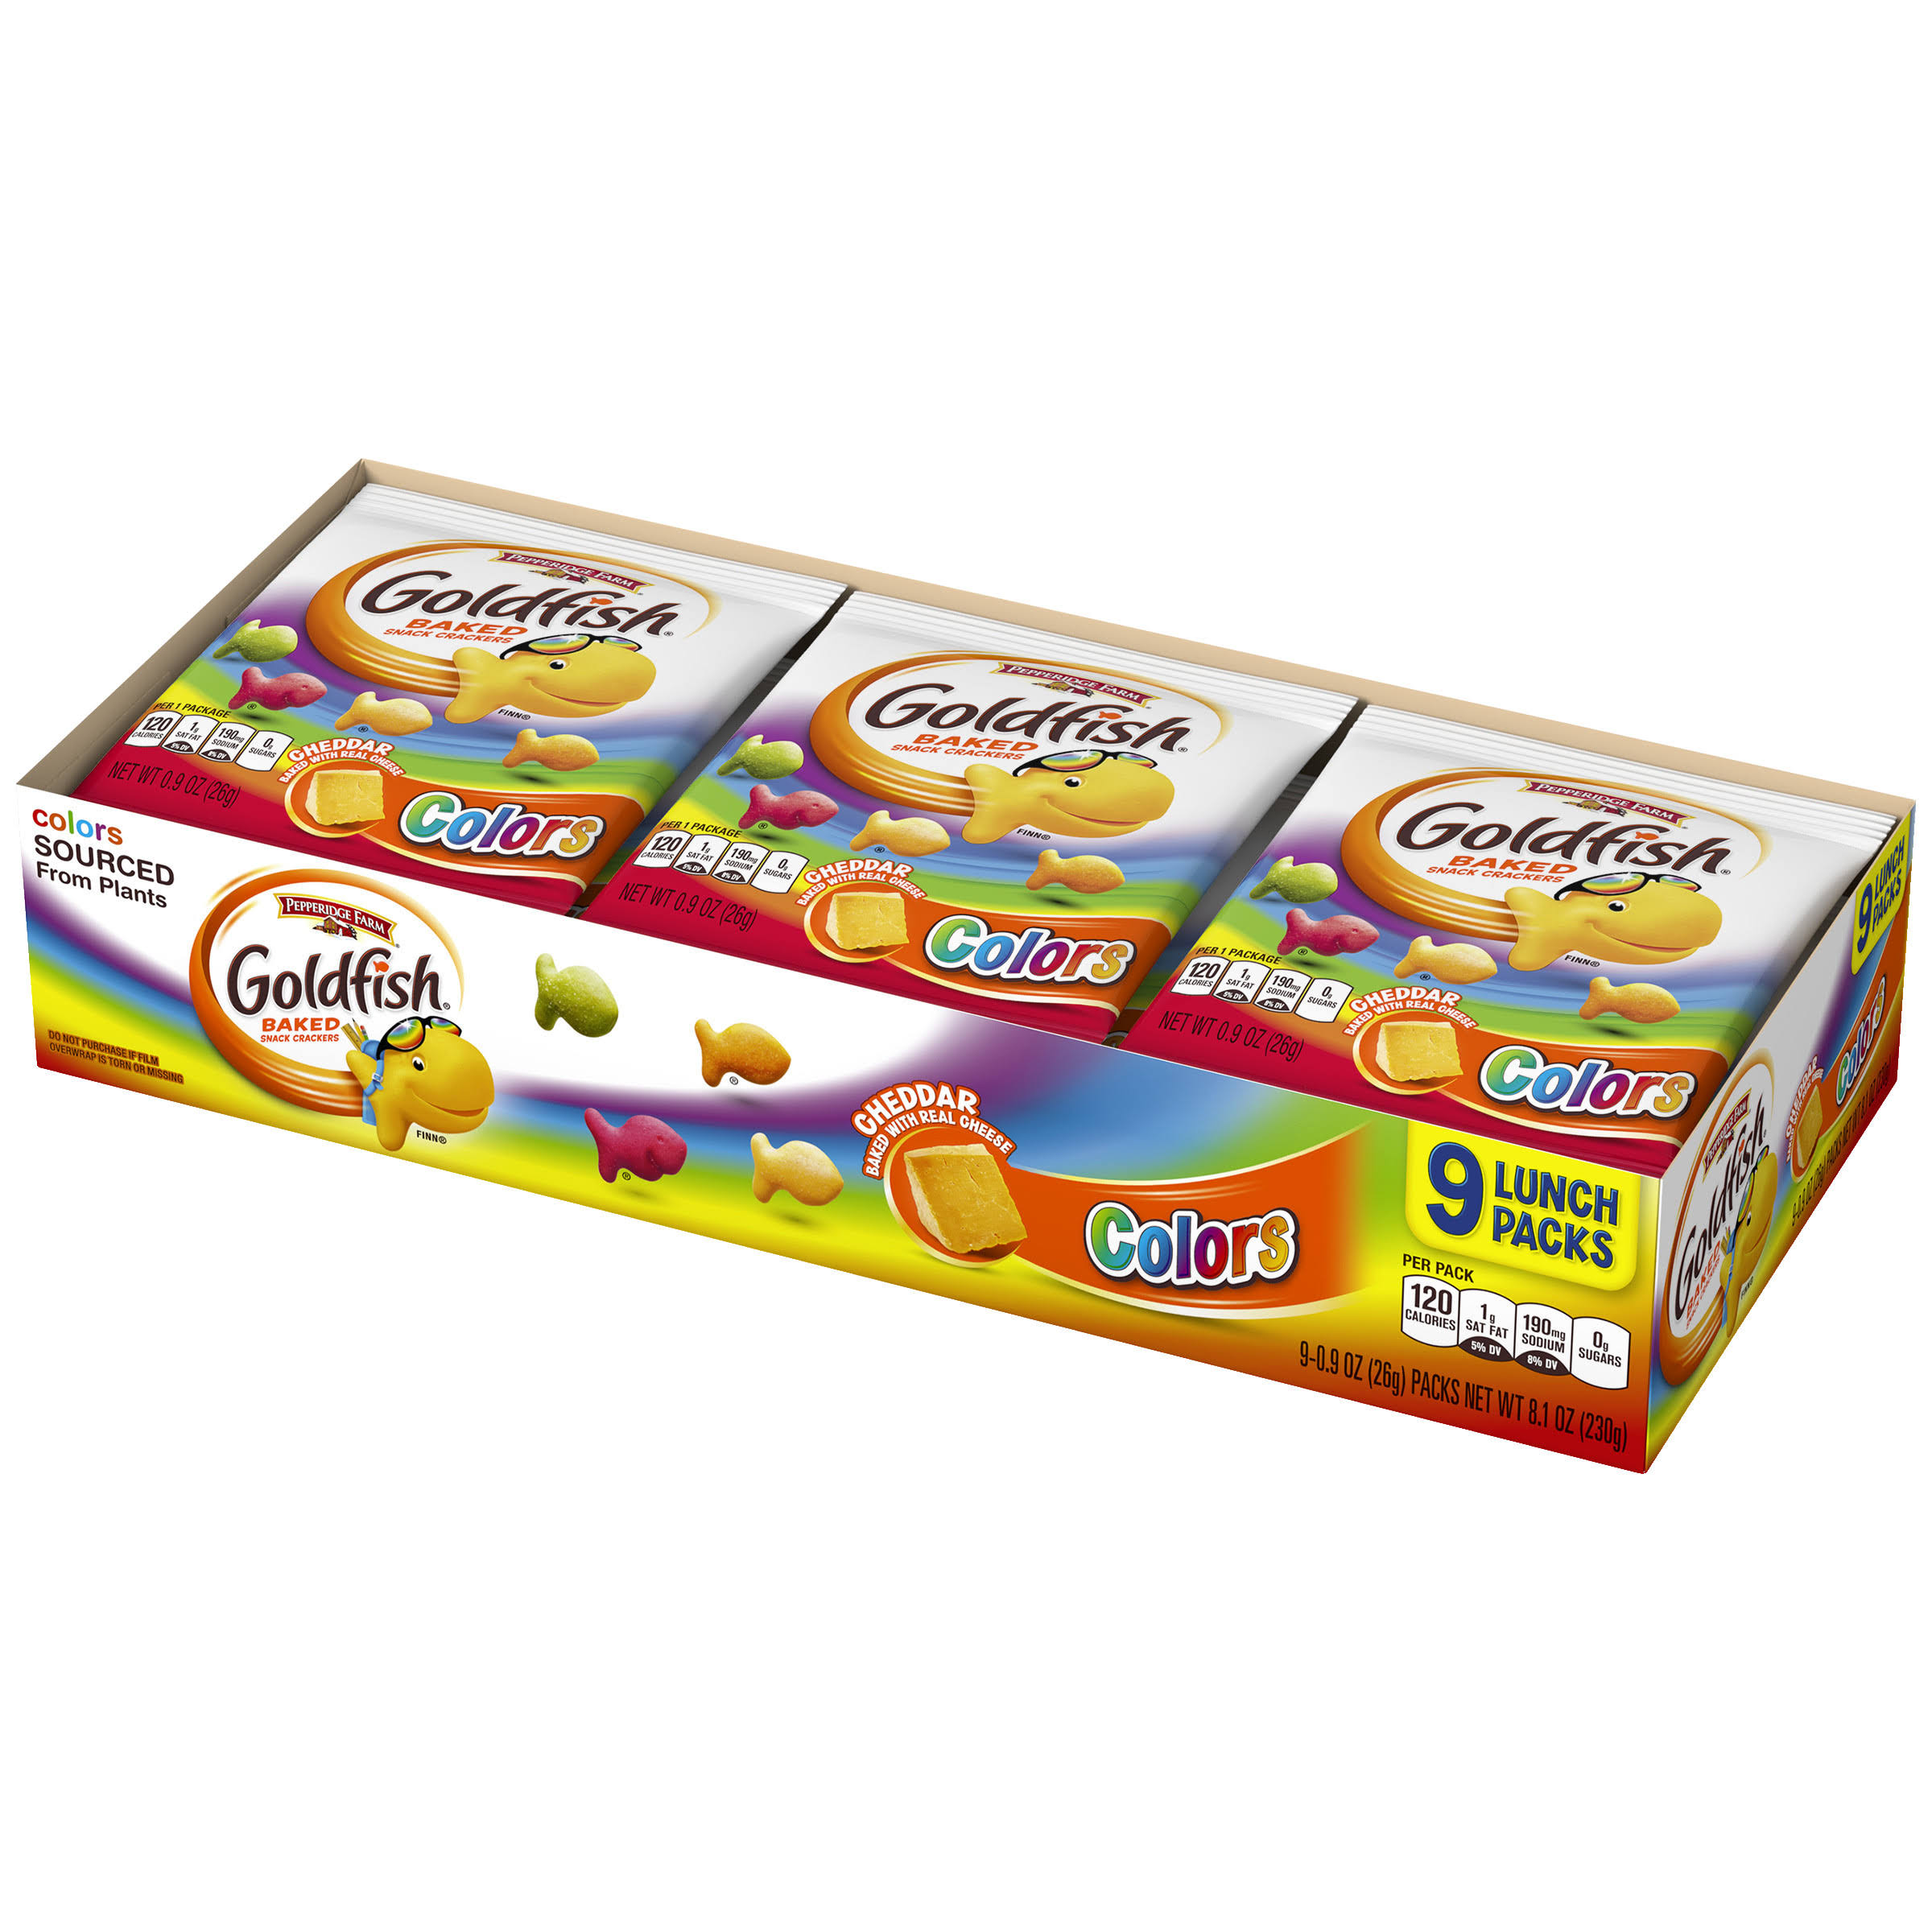 Pepperidge Farm Goldfish Colors Crackers - Multi Packs